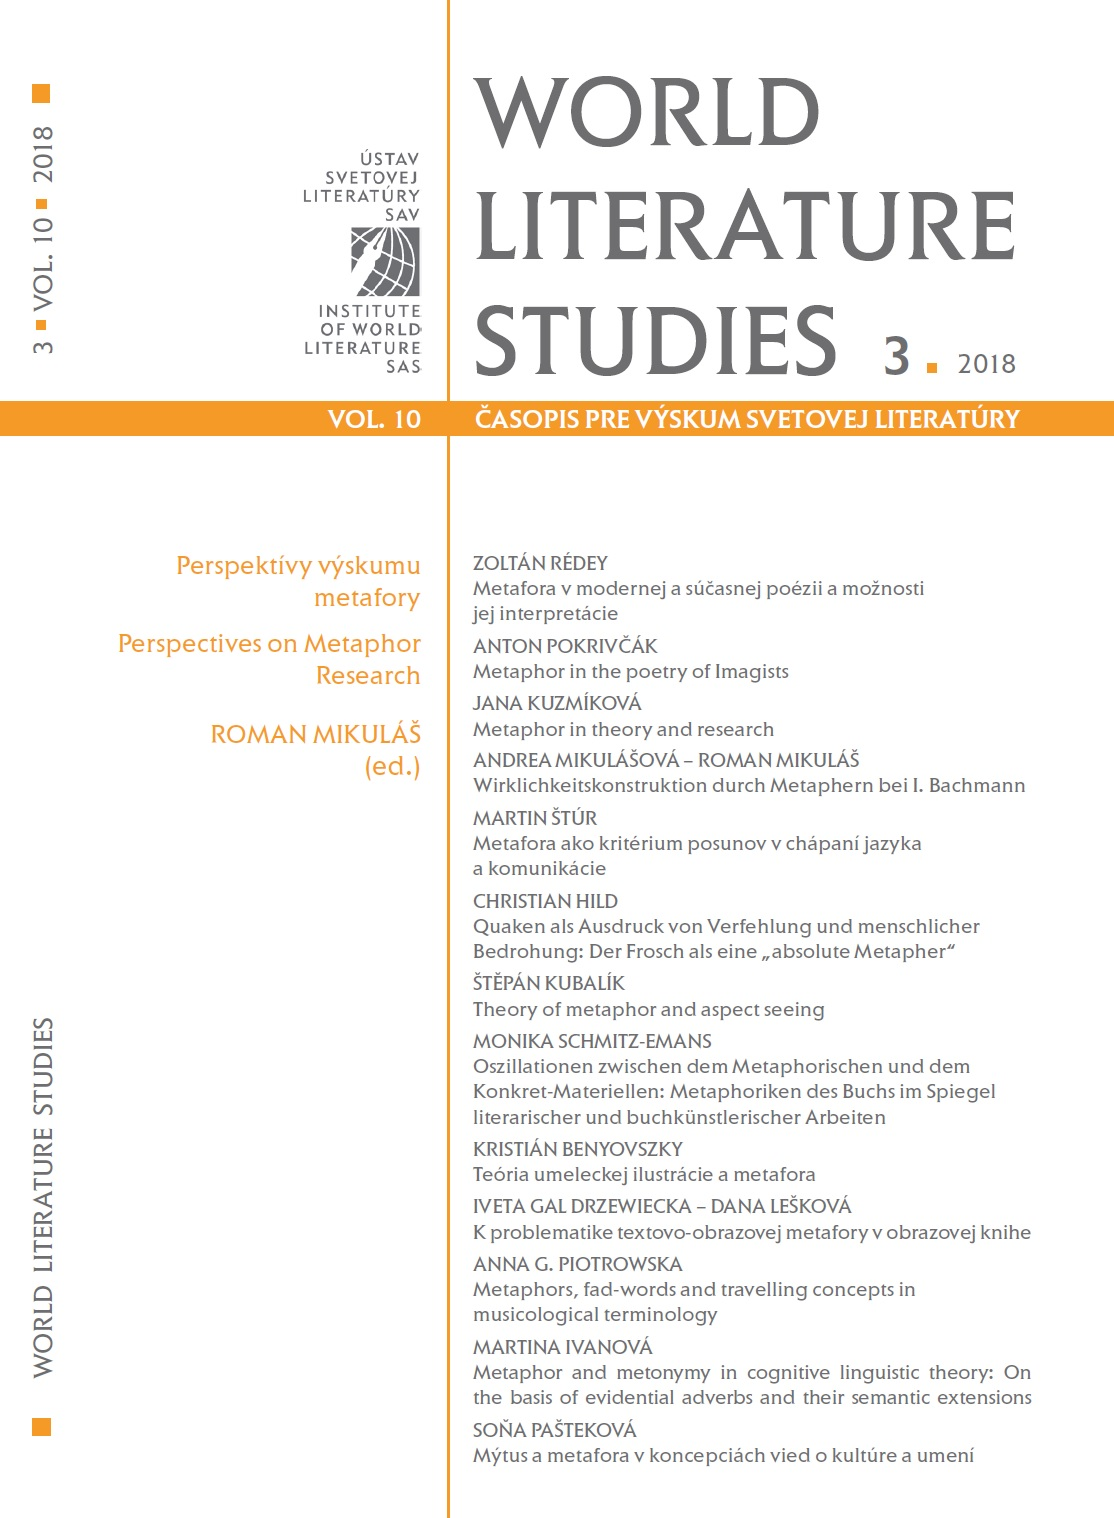 Myth and metaphor in concepts of cultural and literary studies Cover Image